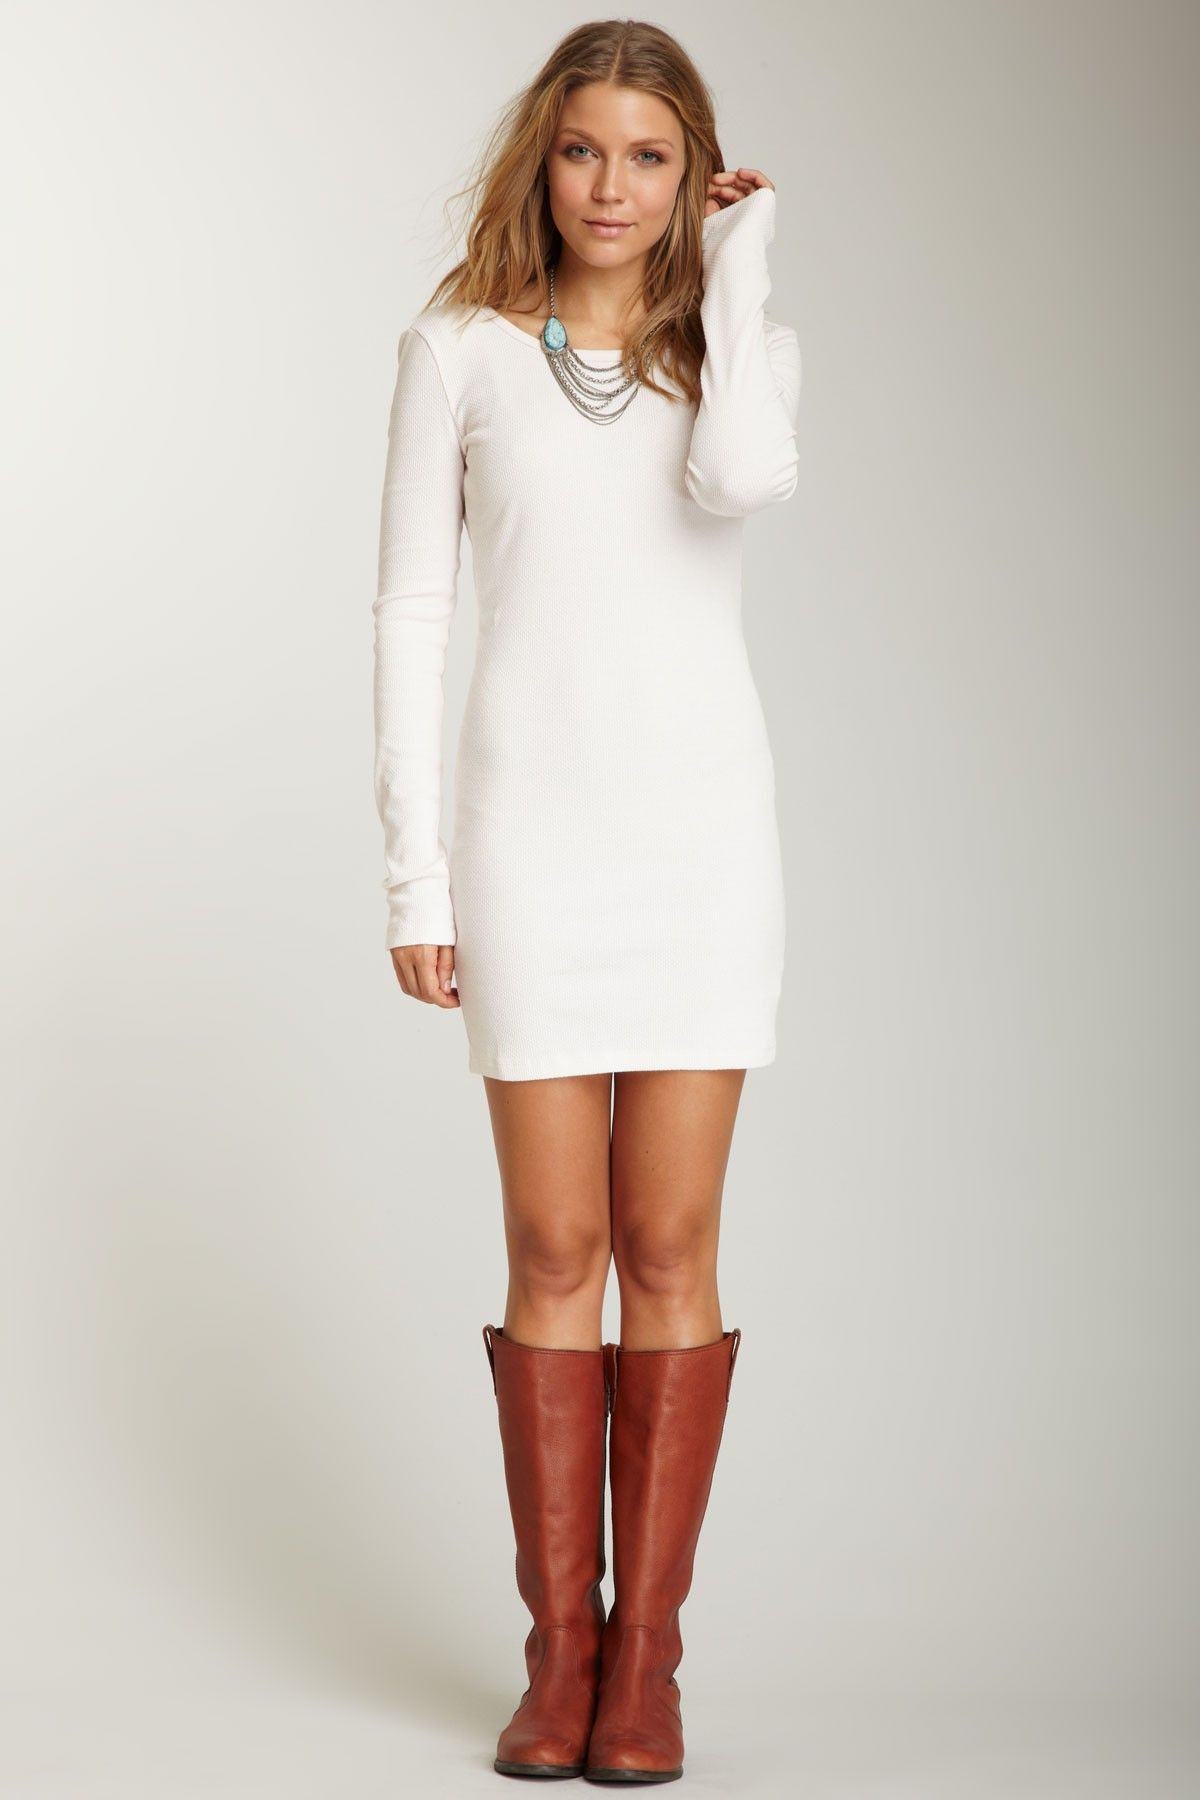 48229fc3fce White dress and boots for winter